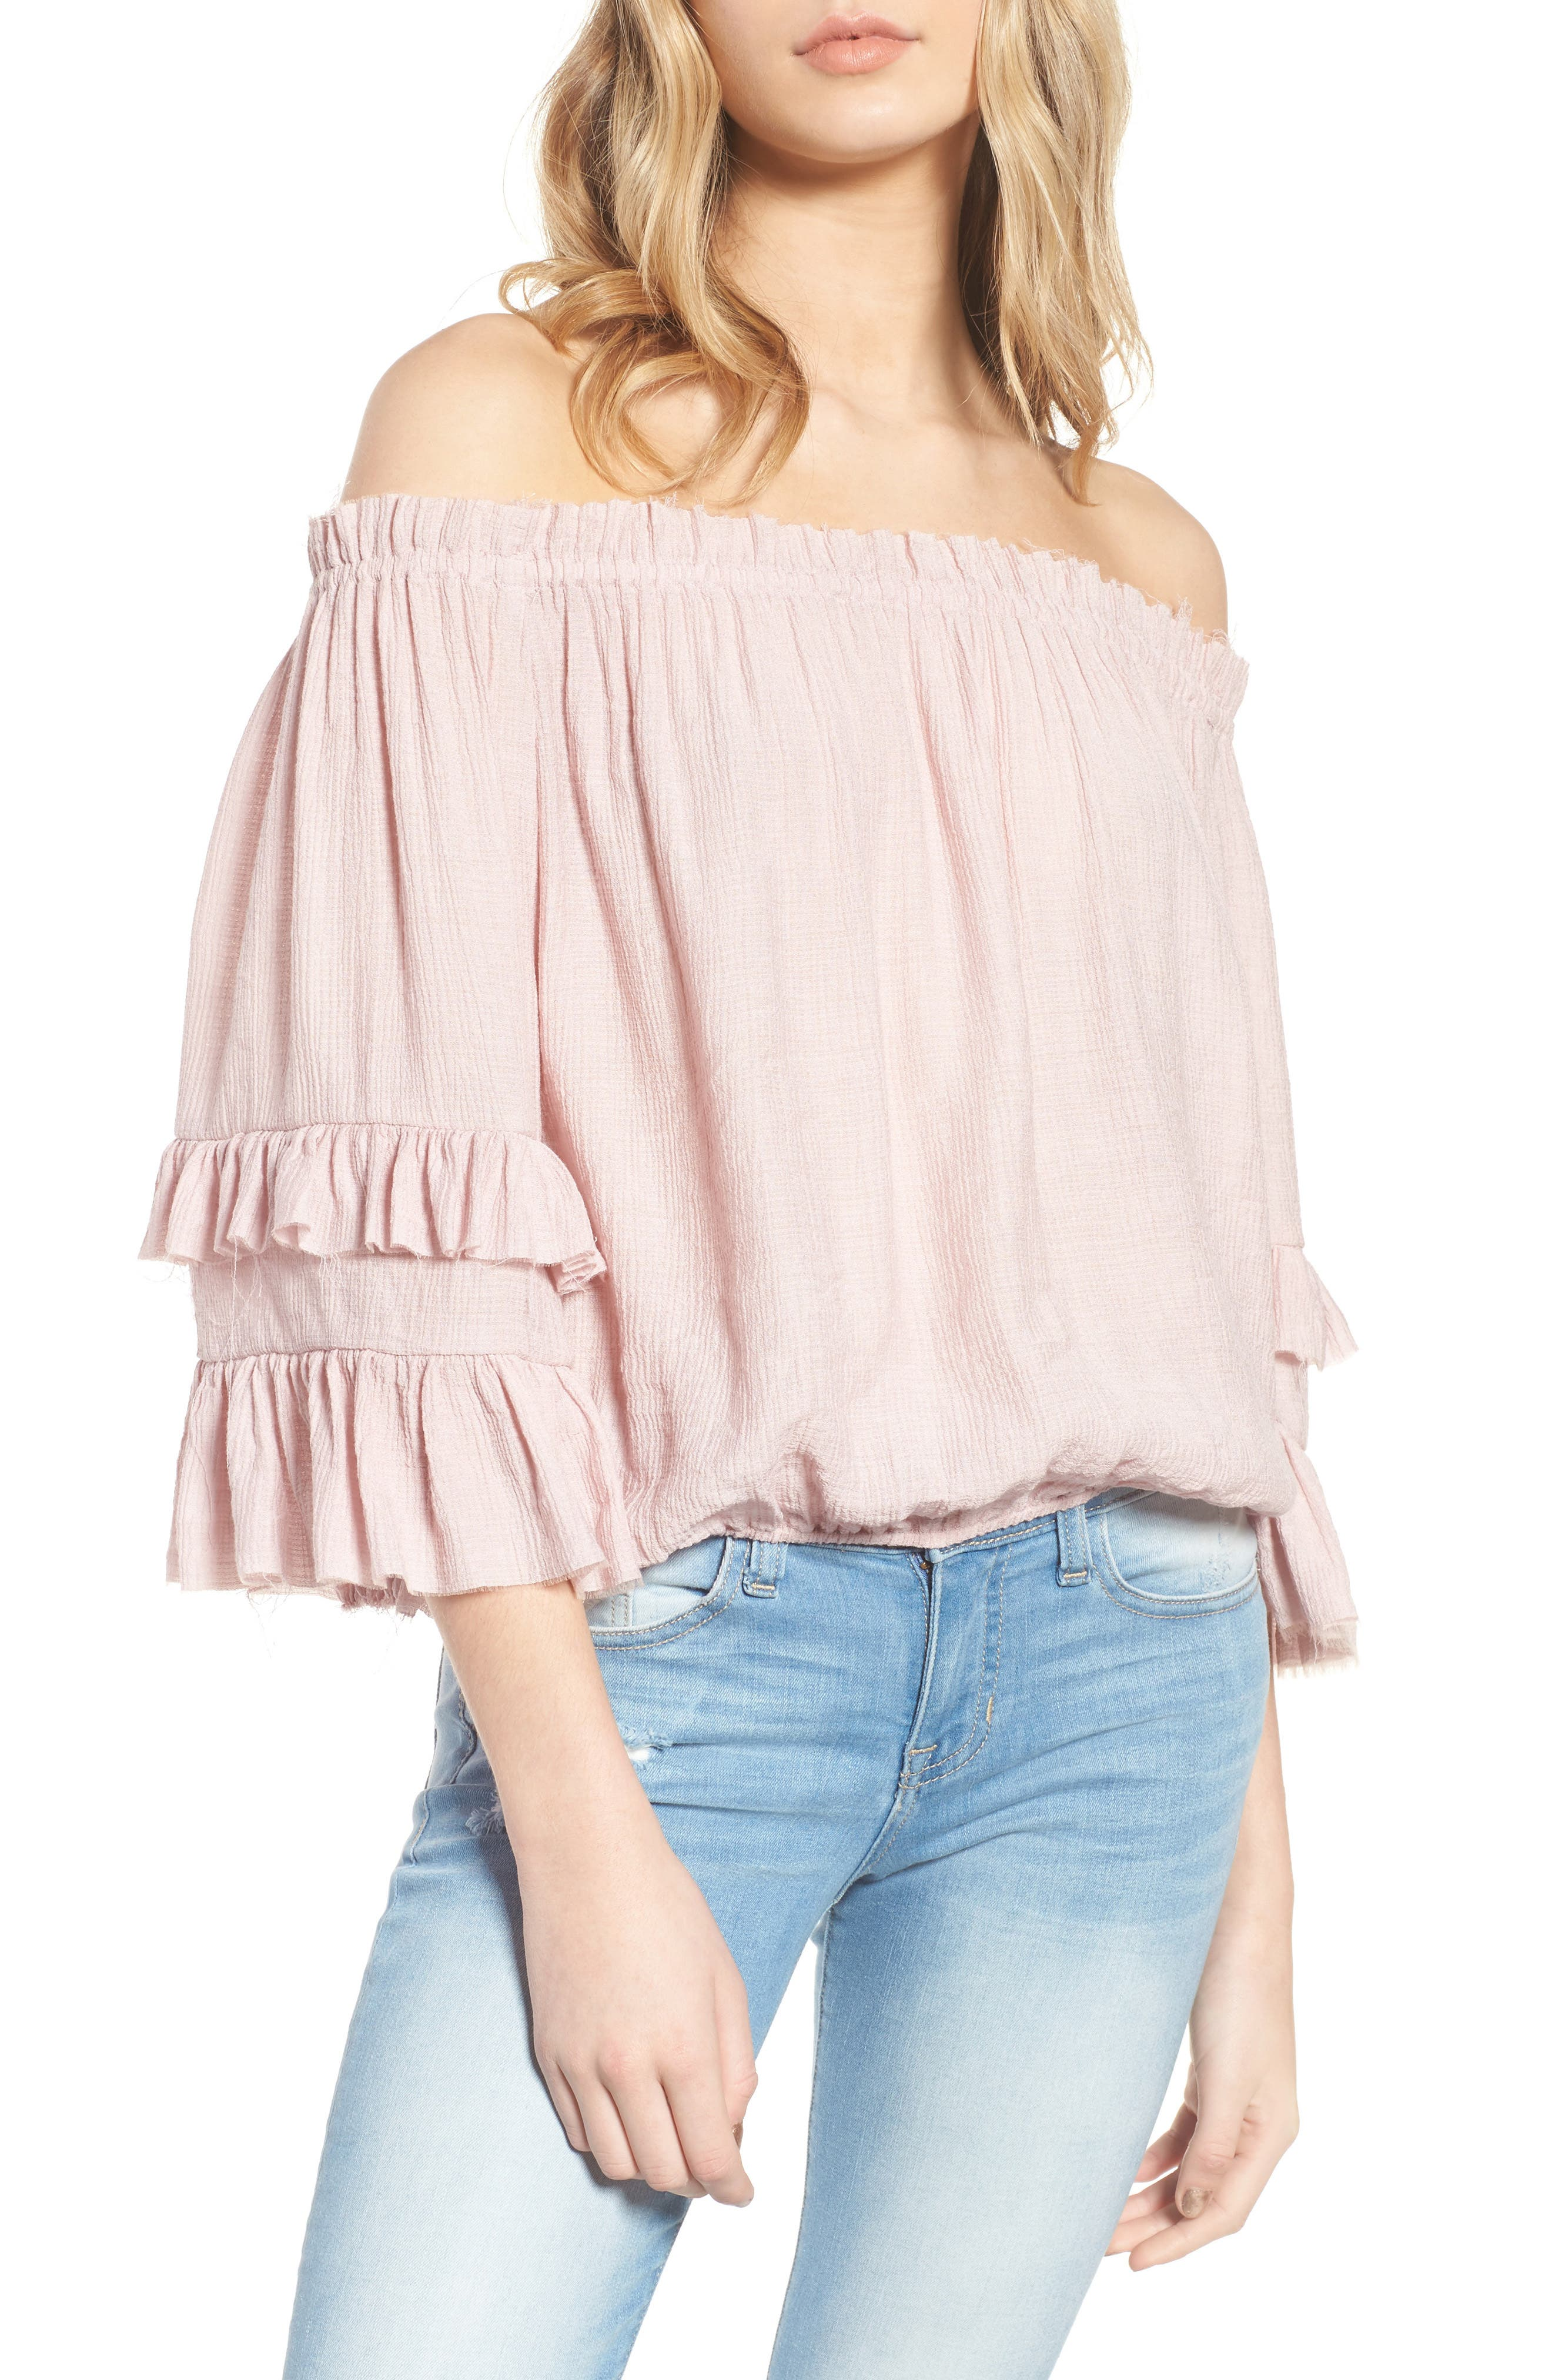 Know One Cares Tiered Off the Shoulder Top,                             Main thumbnail 1, color,